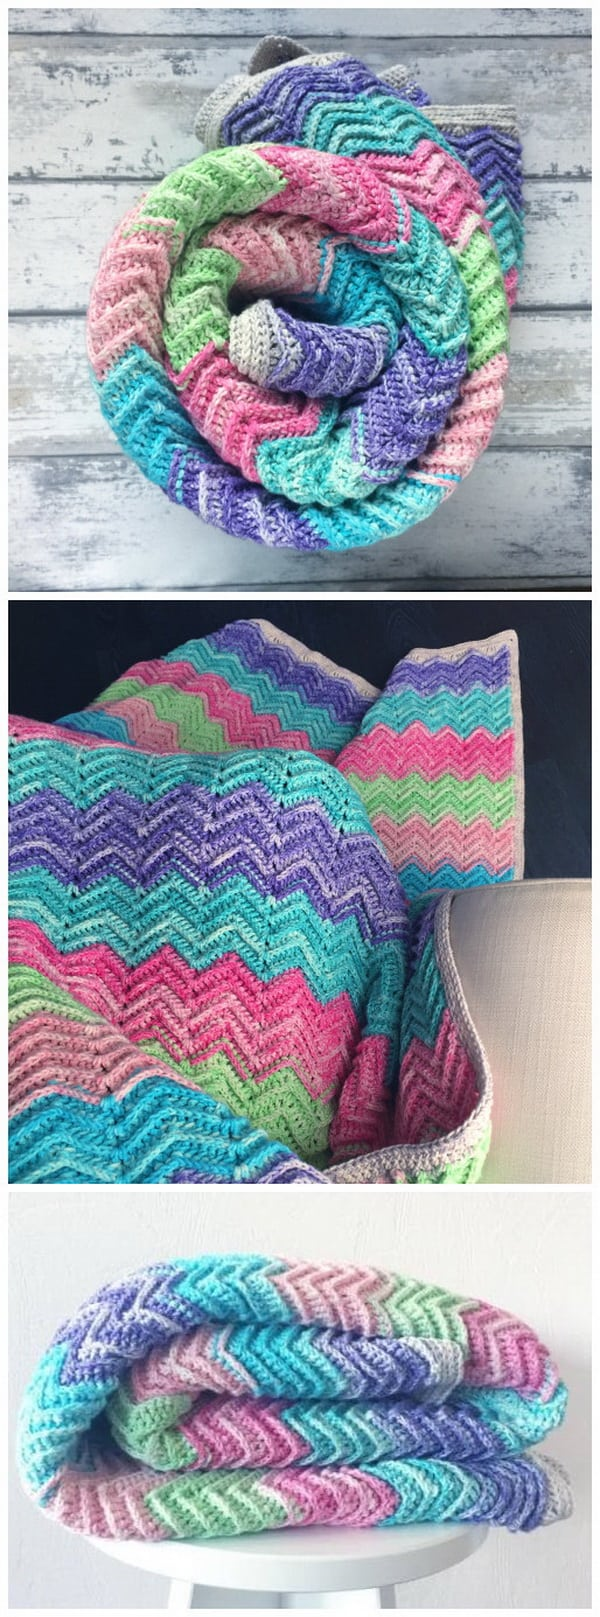 Textured chevron blanket